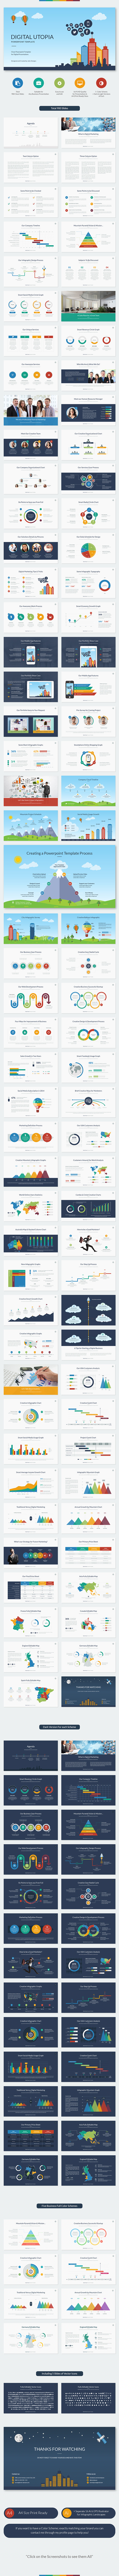 GraphicRiver Digital Utopia Powerpoint Template 11465961